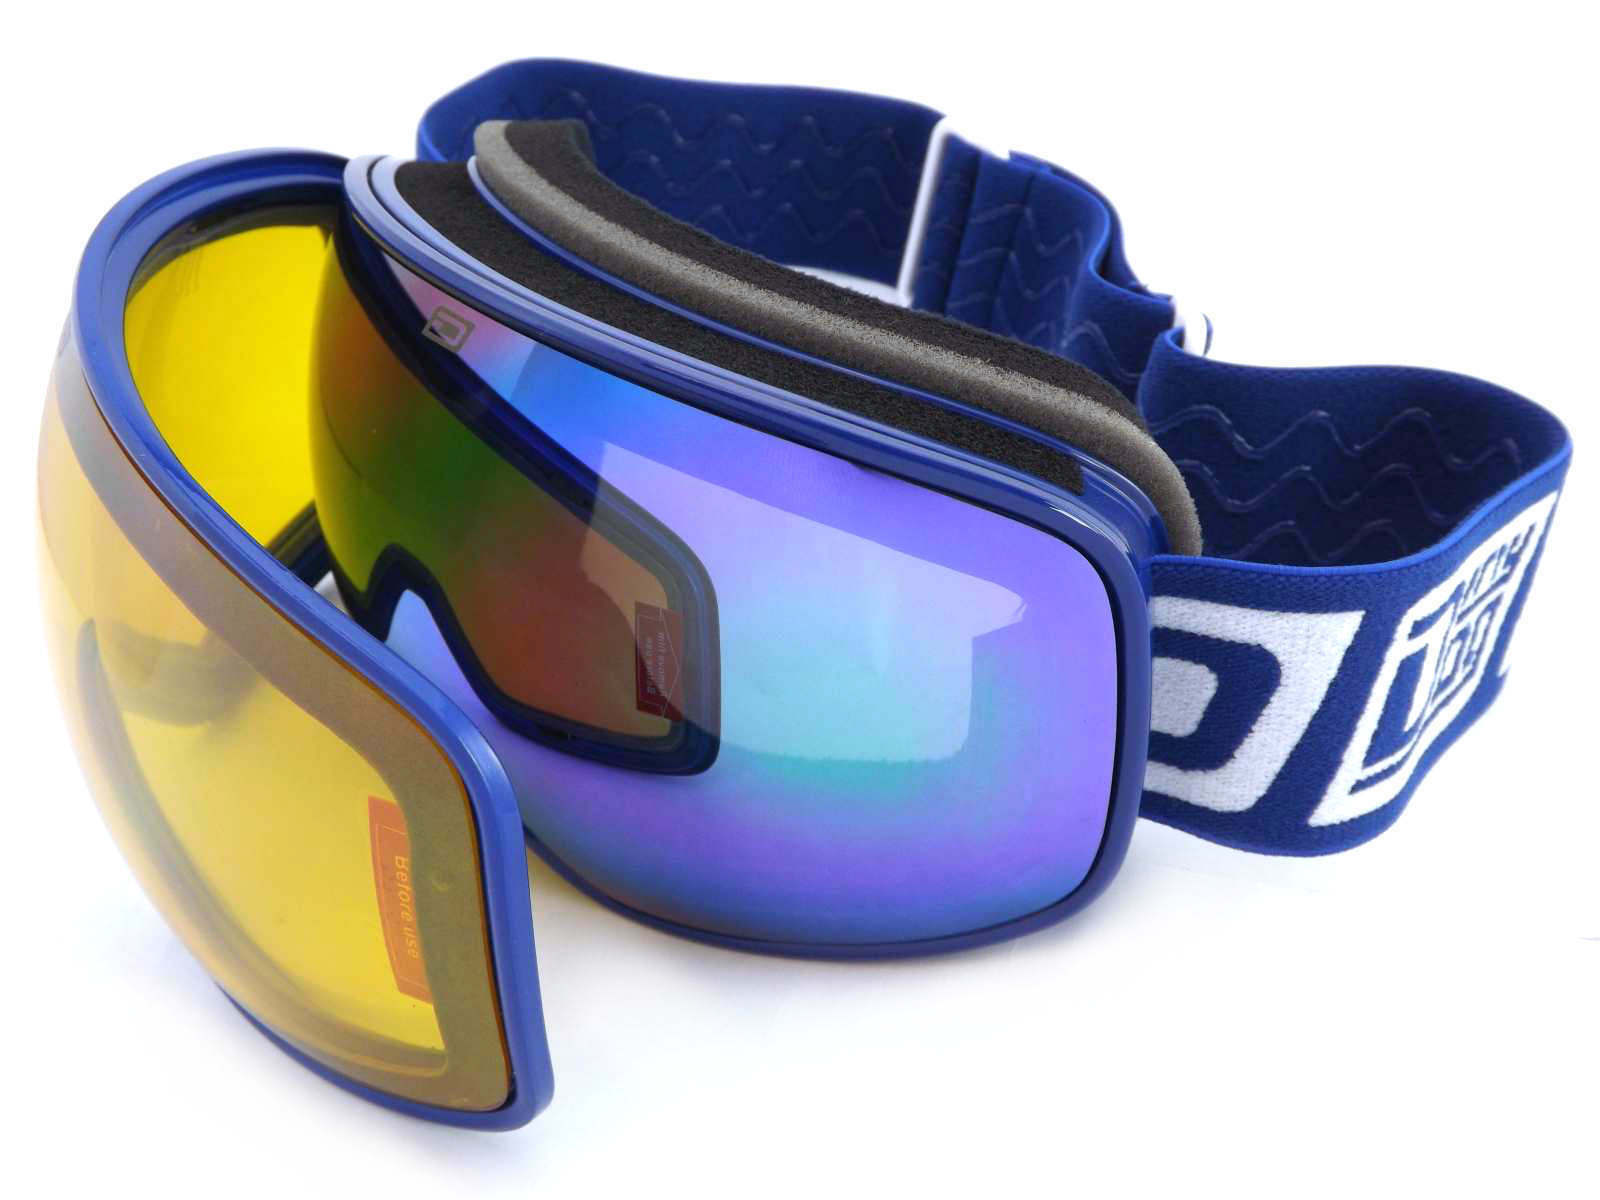 DIRTY DOG Small Fit Magnetic Lens Change Mutant 0.5 Ski Goggles Navy bluee 54192